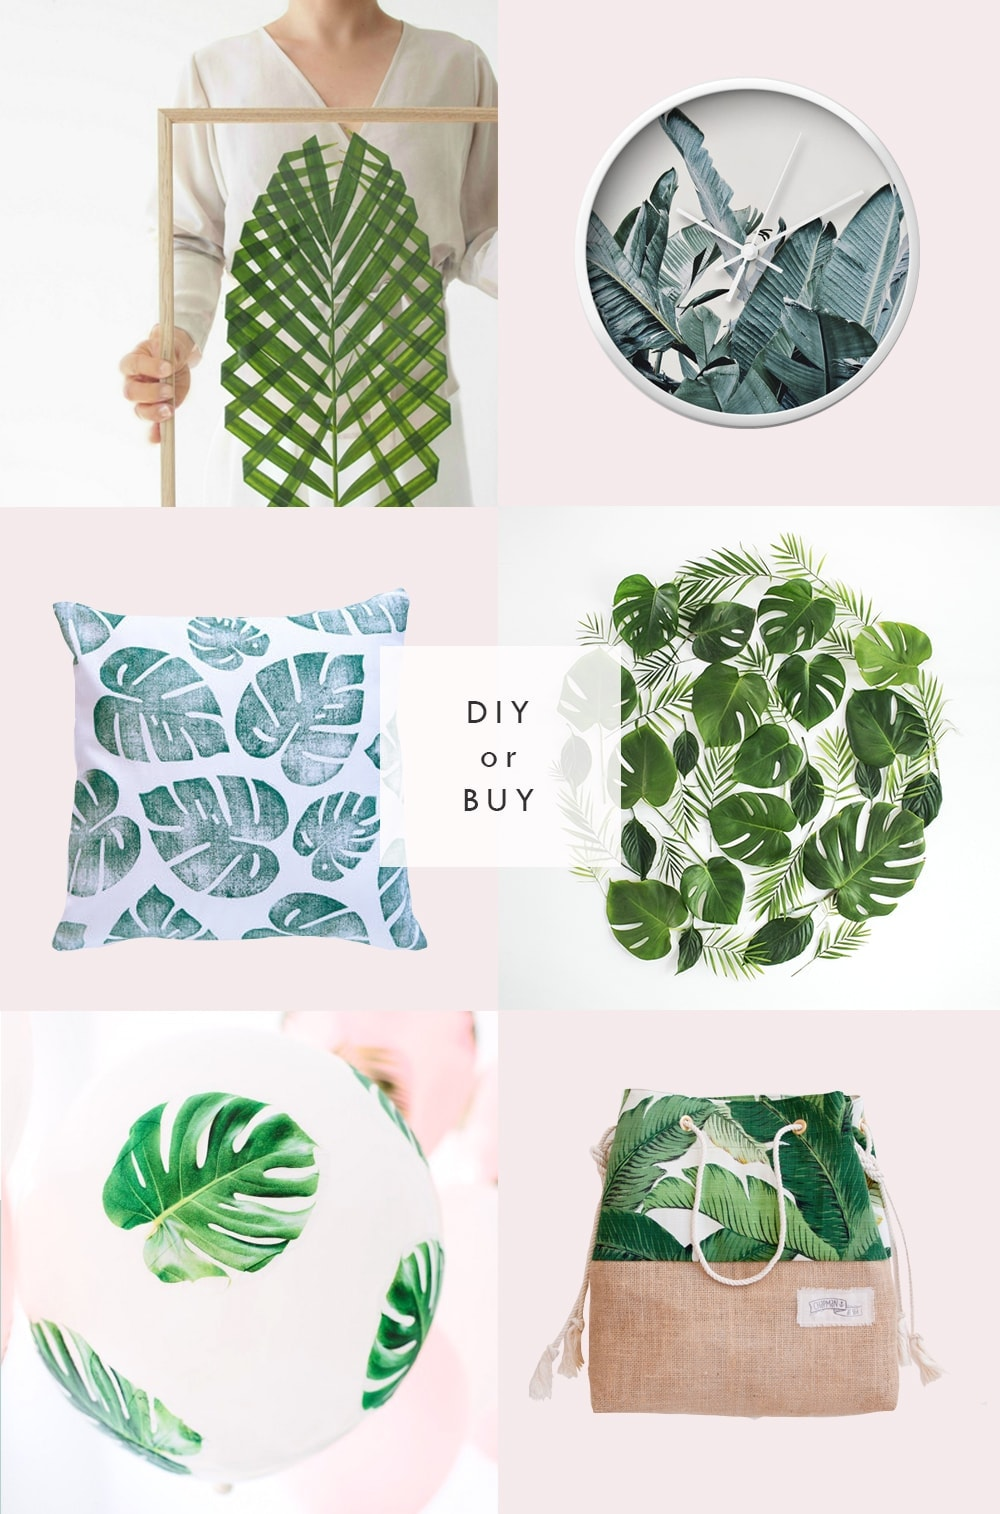 to buy or DIY I palm crazy